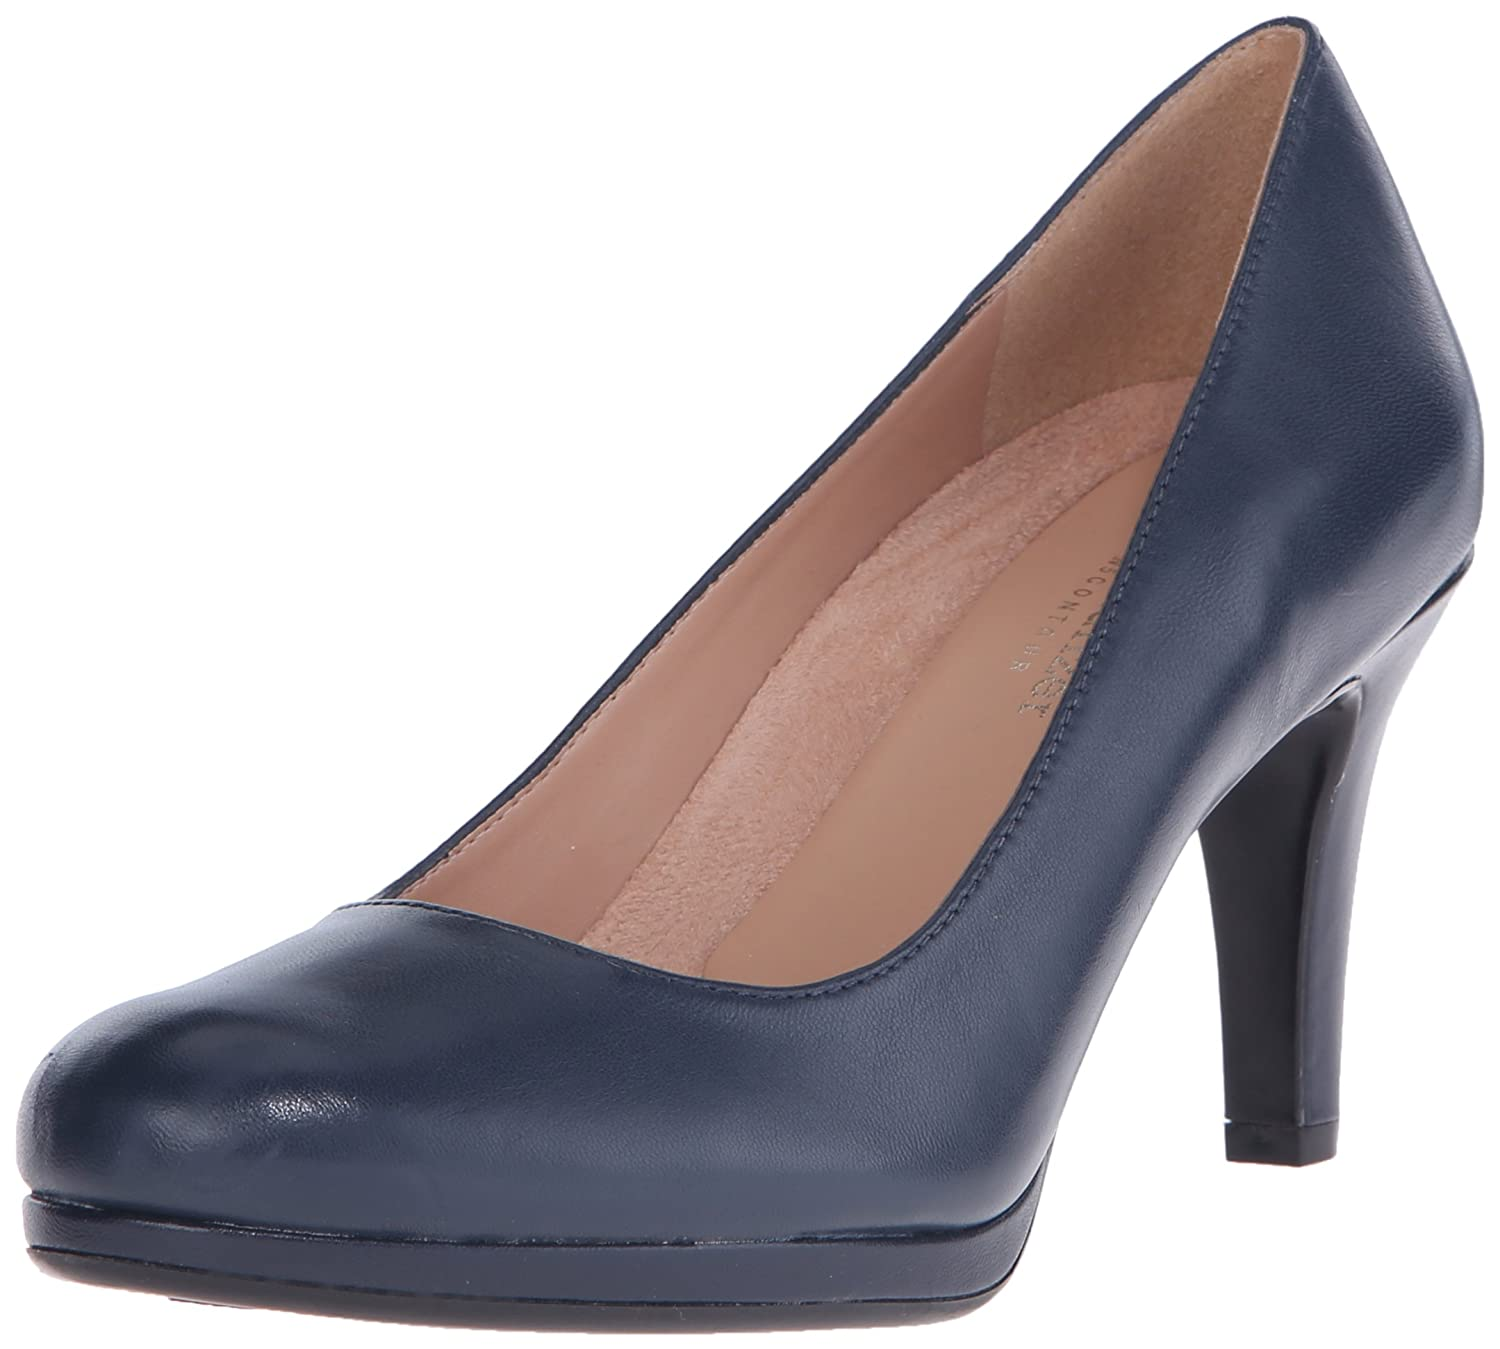 Naturalizer Women's Michelle Dress Pump B00RBVK3SU 9 N US|Navy